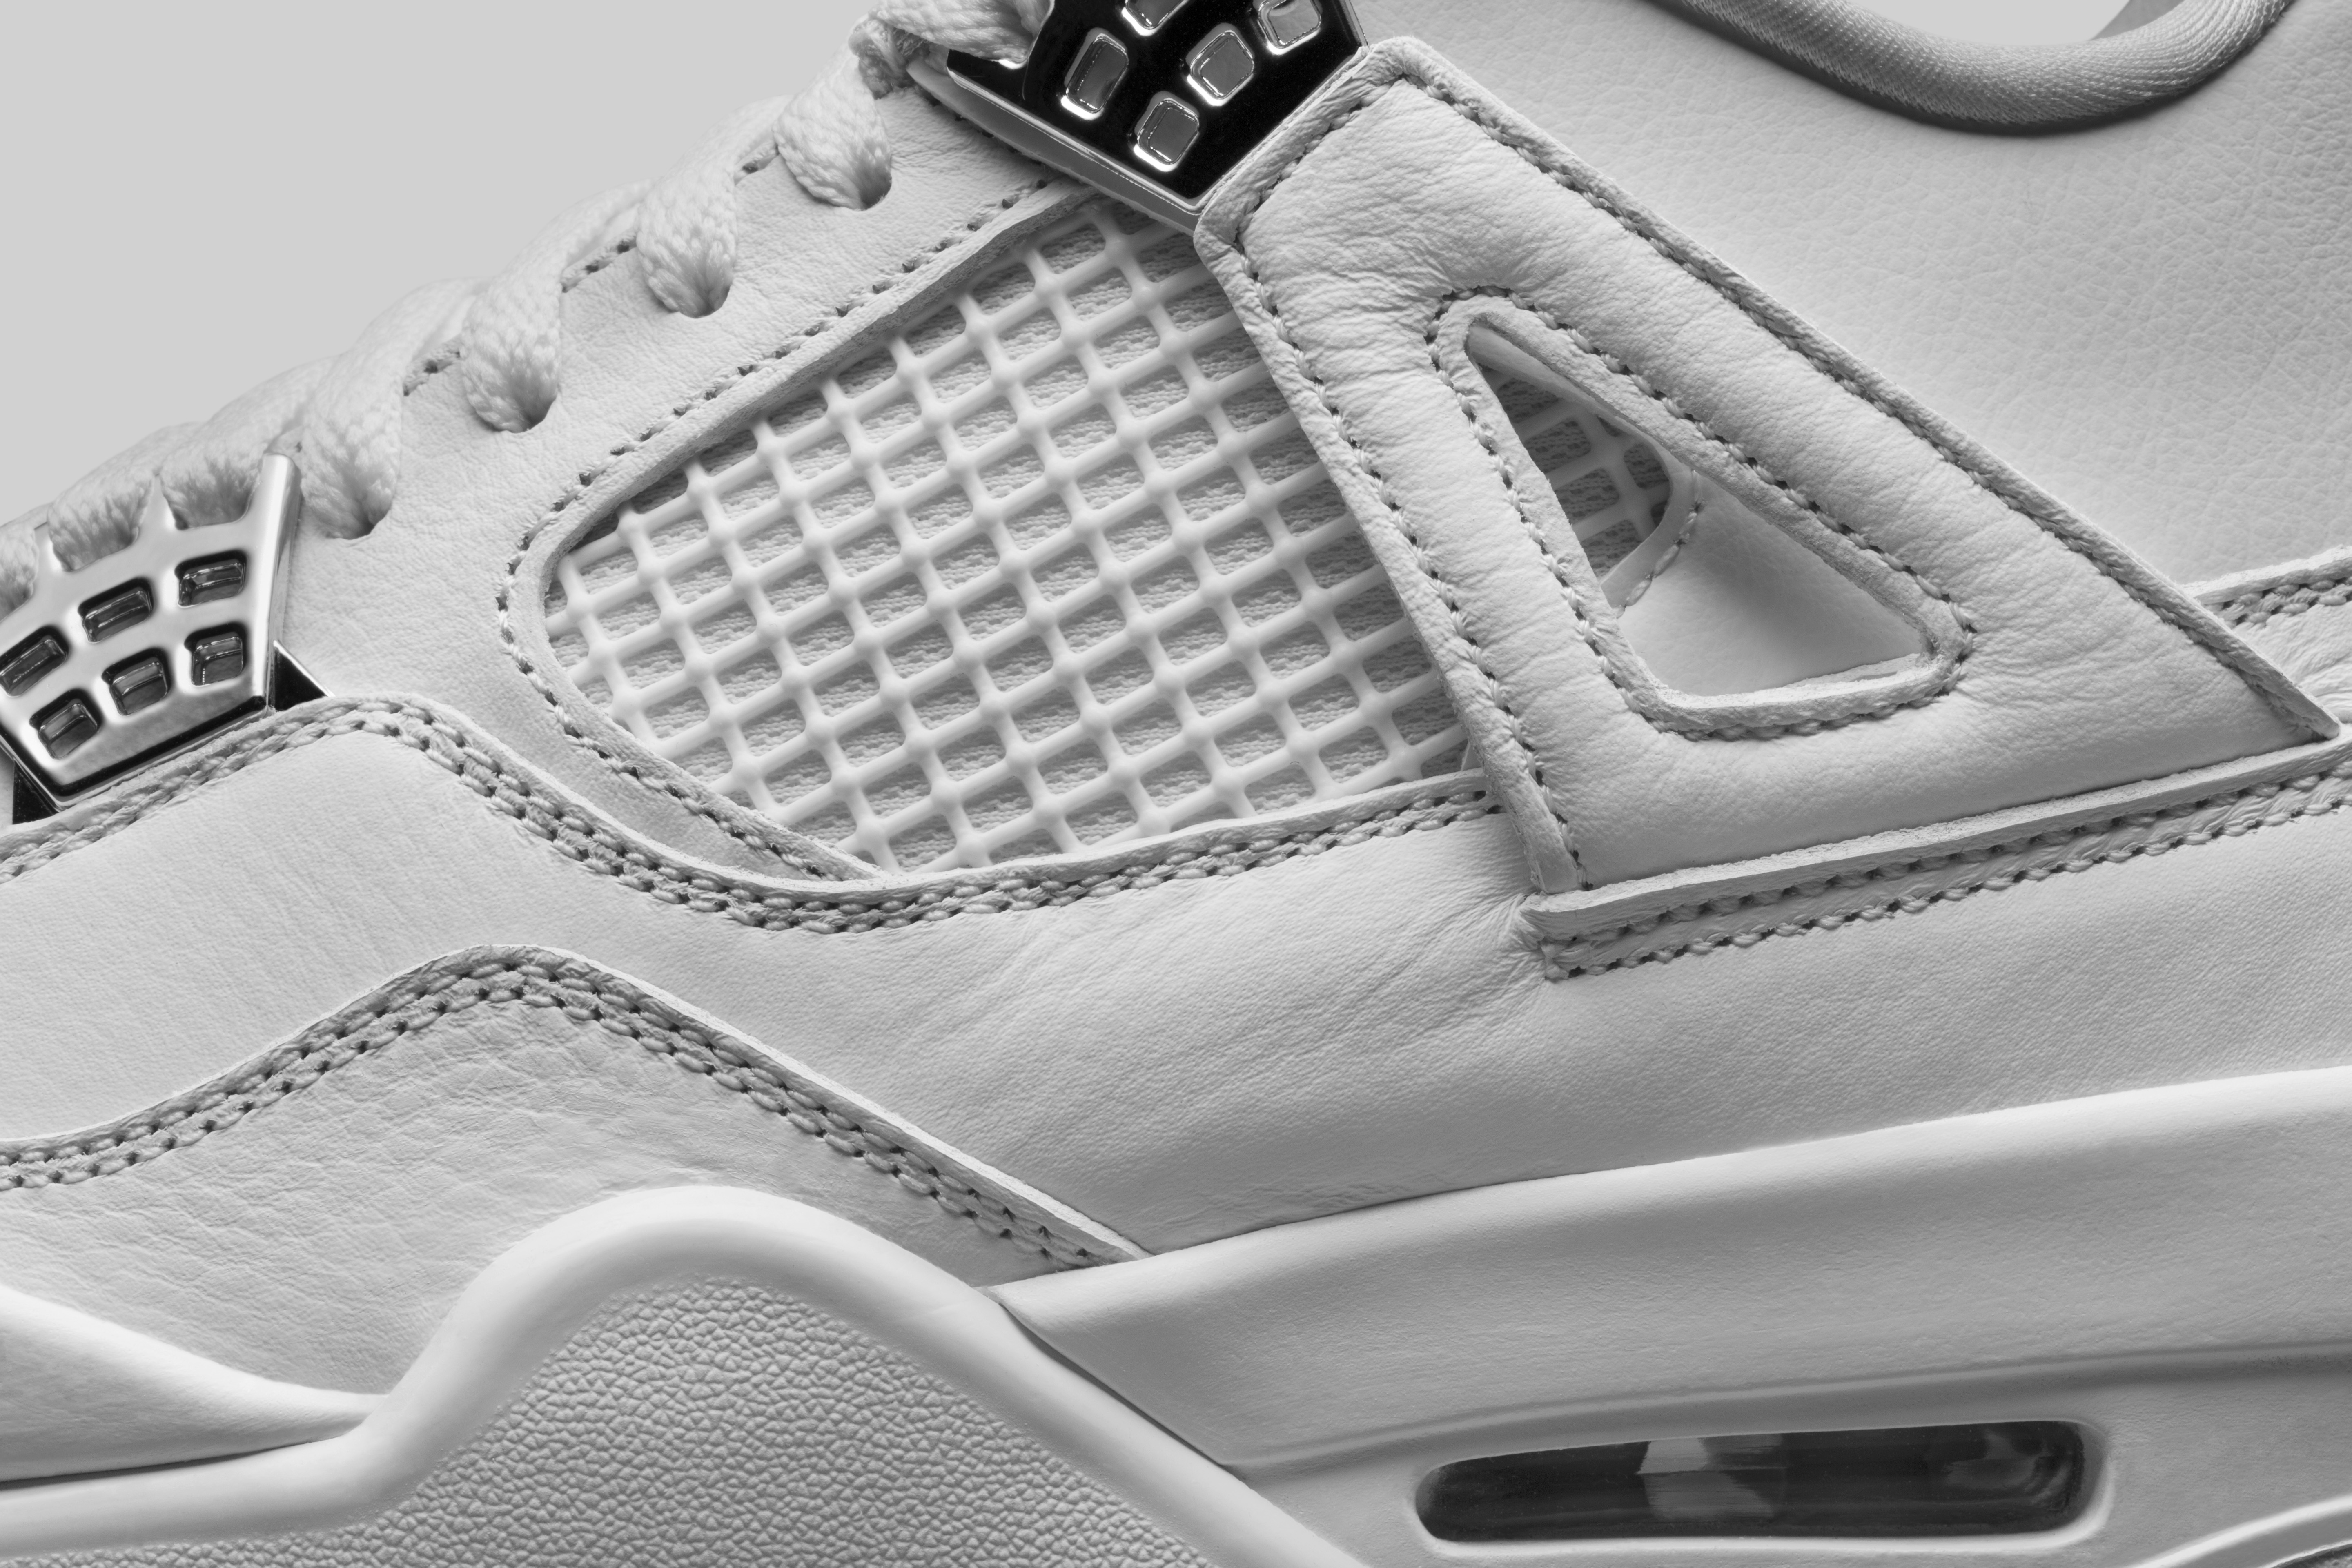 f51db0da1 They re also the simplest  an all-white colorway accented with platinum  eyelets. When you think of all-white kicks that are essential every time  summer ...